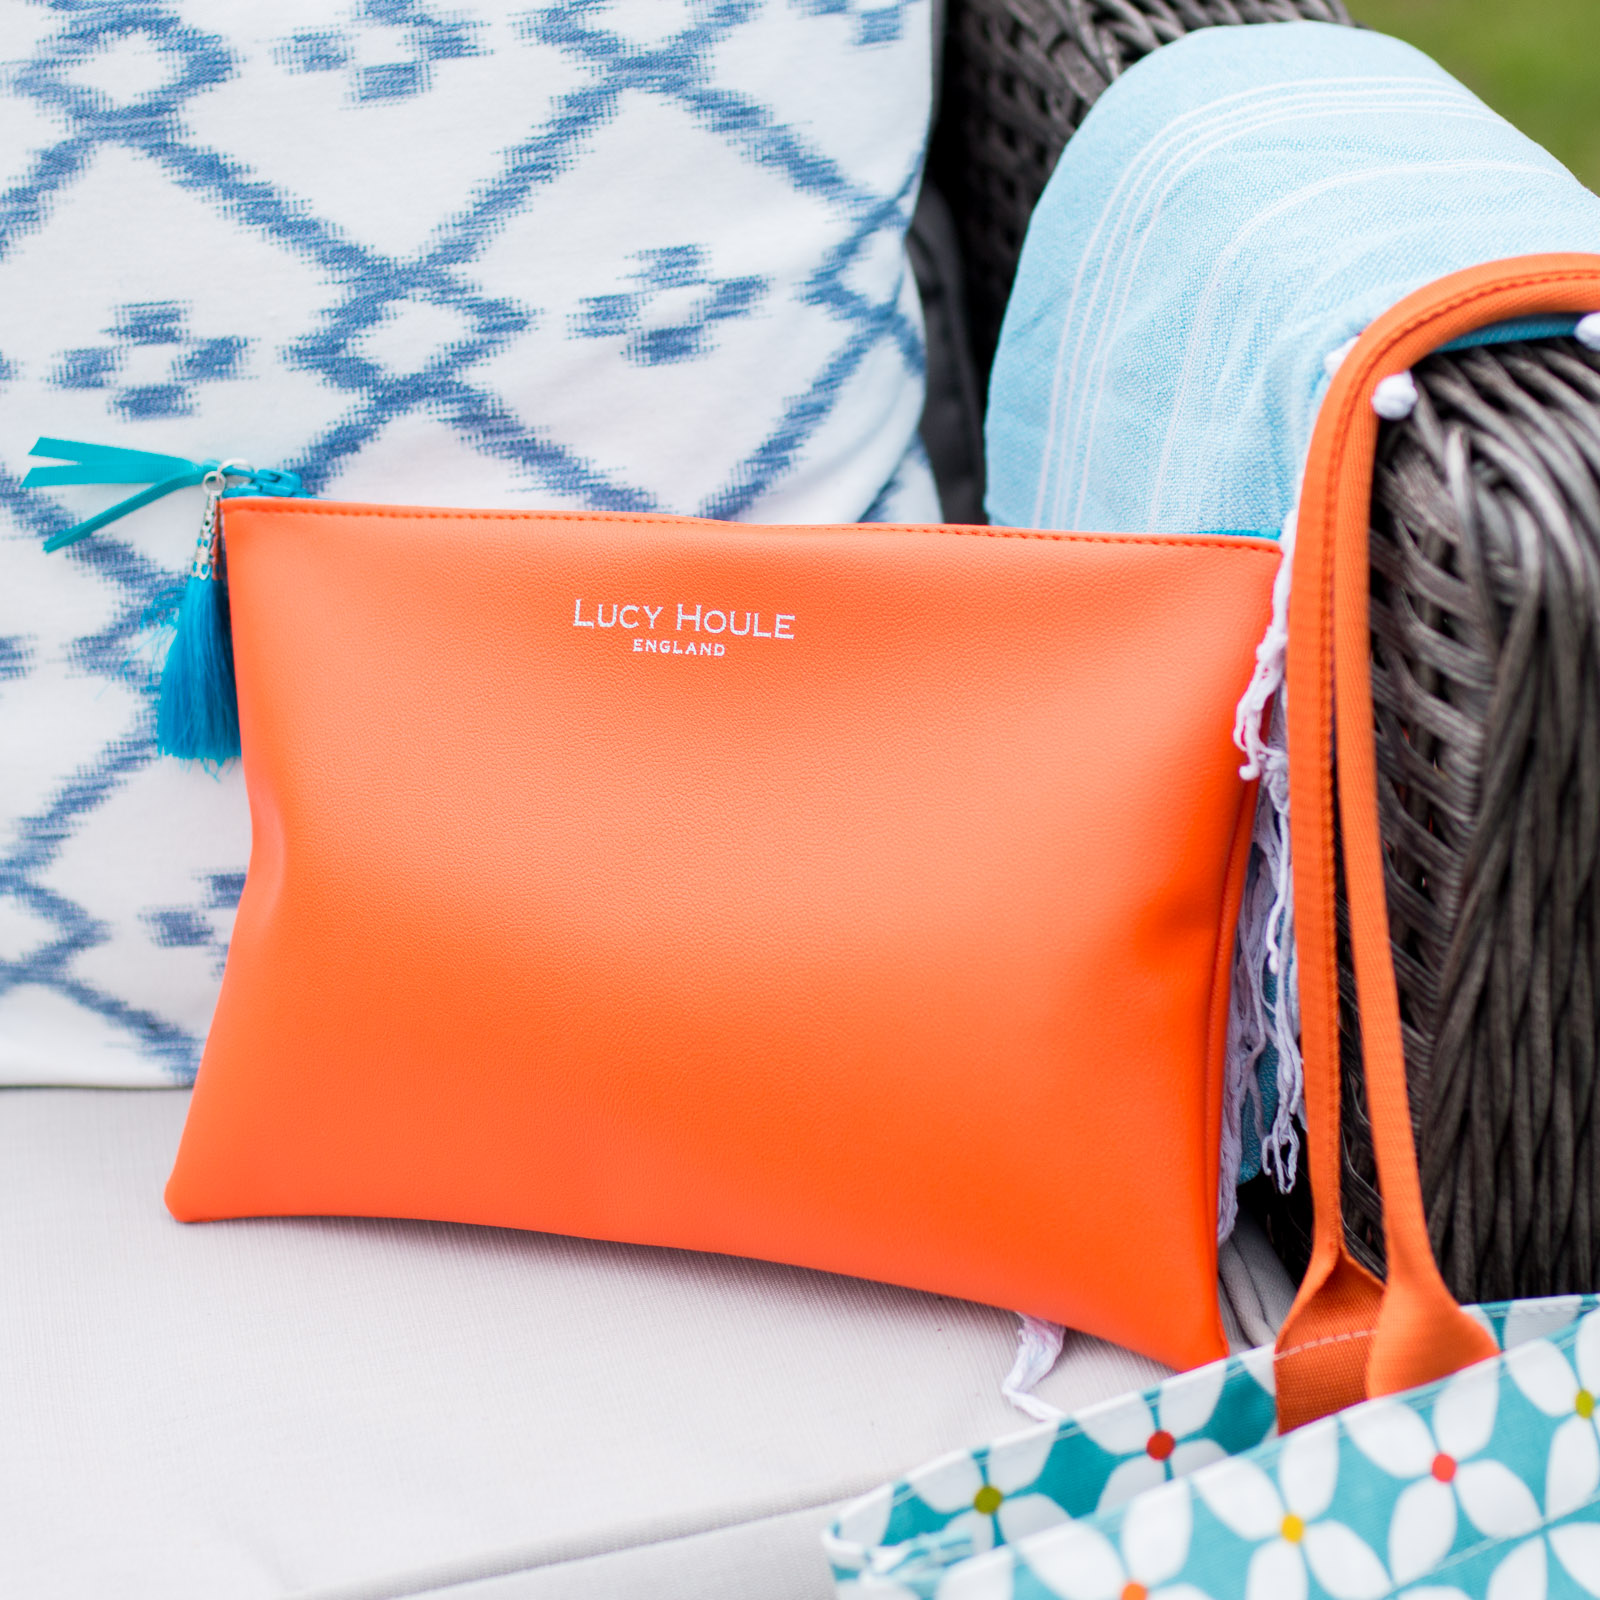 Faux Leather Orange Clutch with Turquoise Tassel